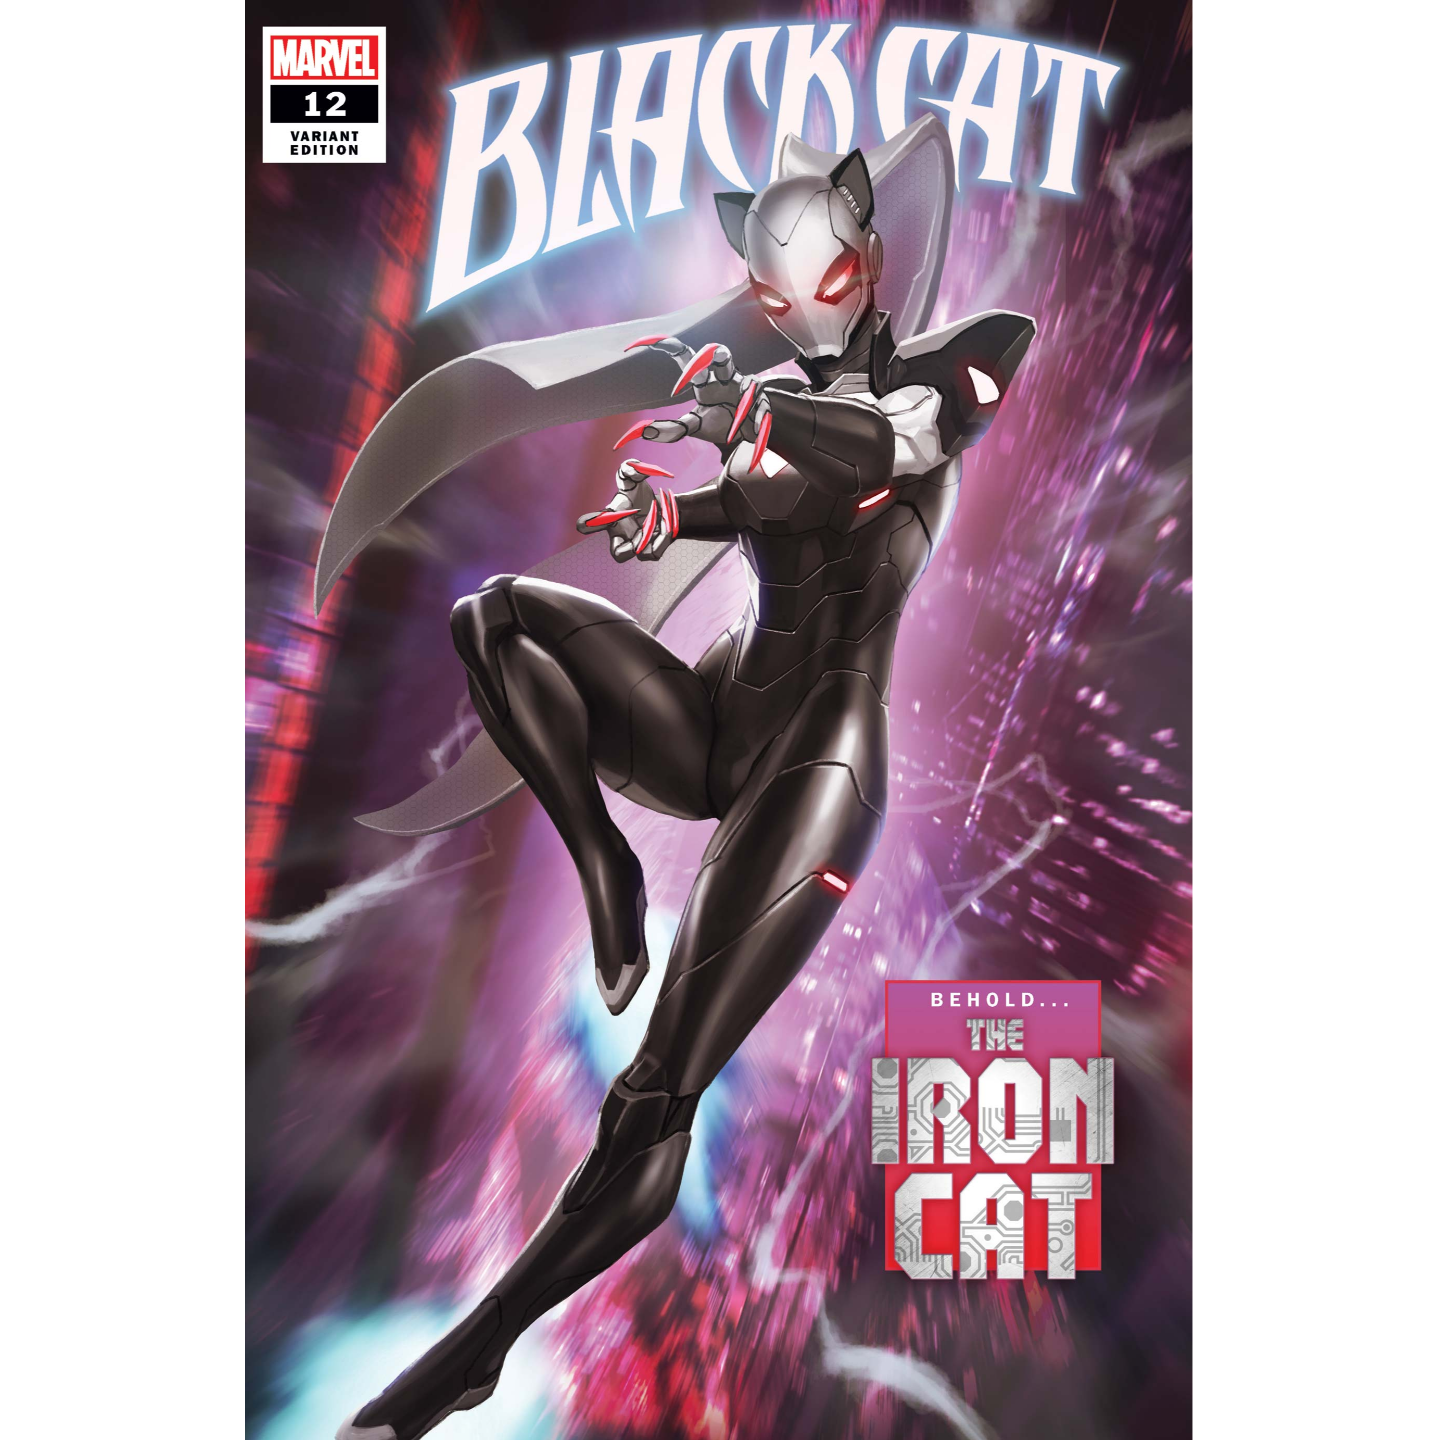 BLACK CAT #12 SKAN VAR